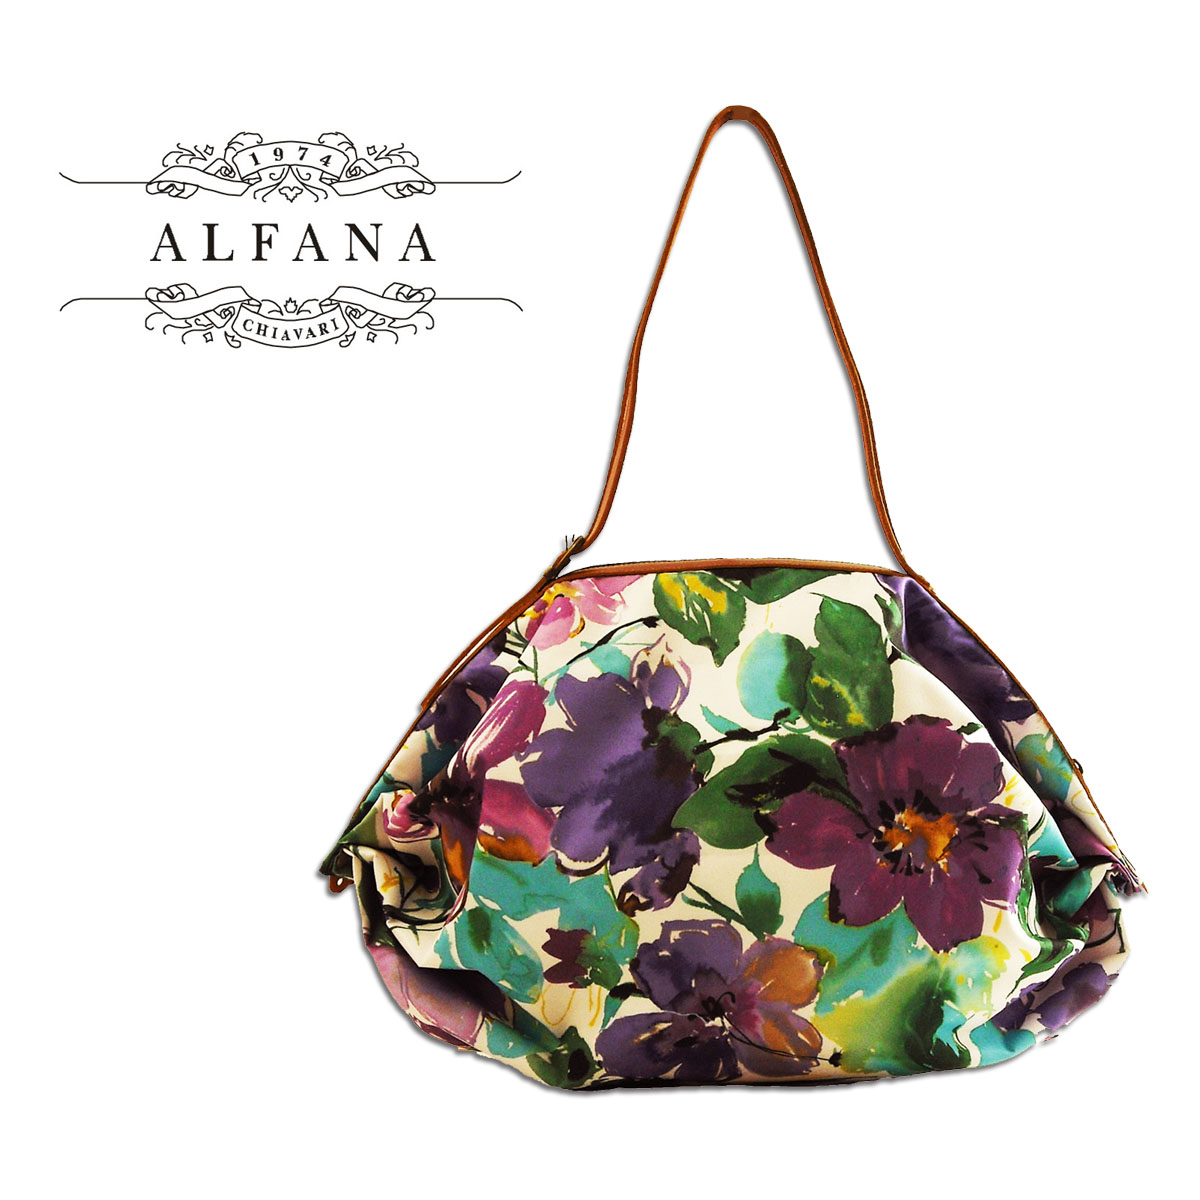 Made in Italy ALFANA / アルファーナ POP CORN58 / popcorn 58 フラワーパープル (65581005 ) foldable bag """"